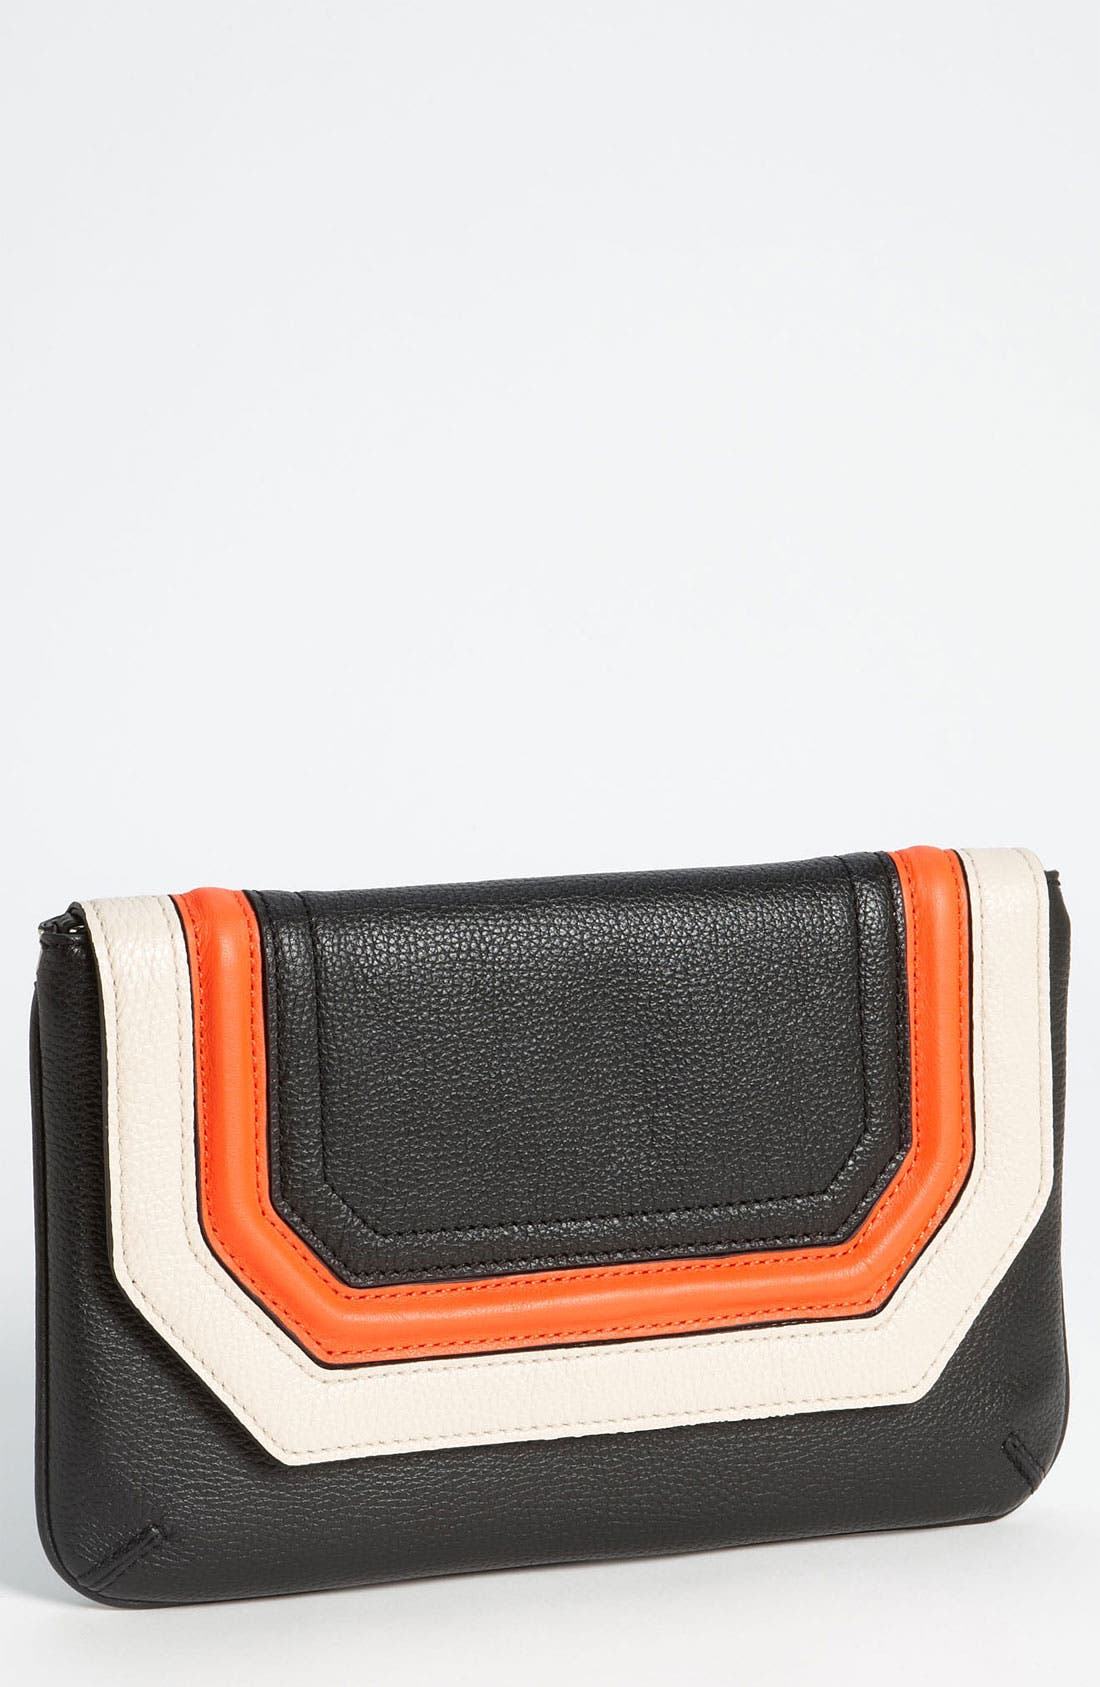 Main Image - Milly 'Zoey' Clutch